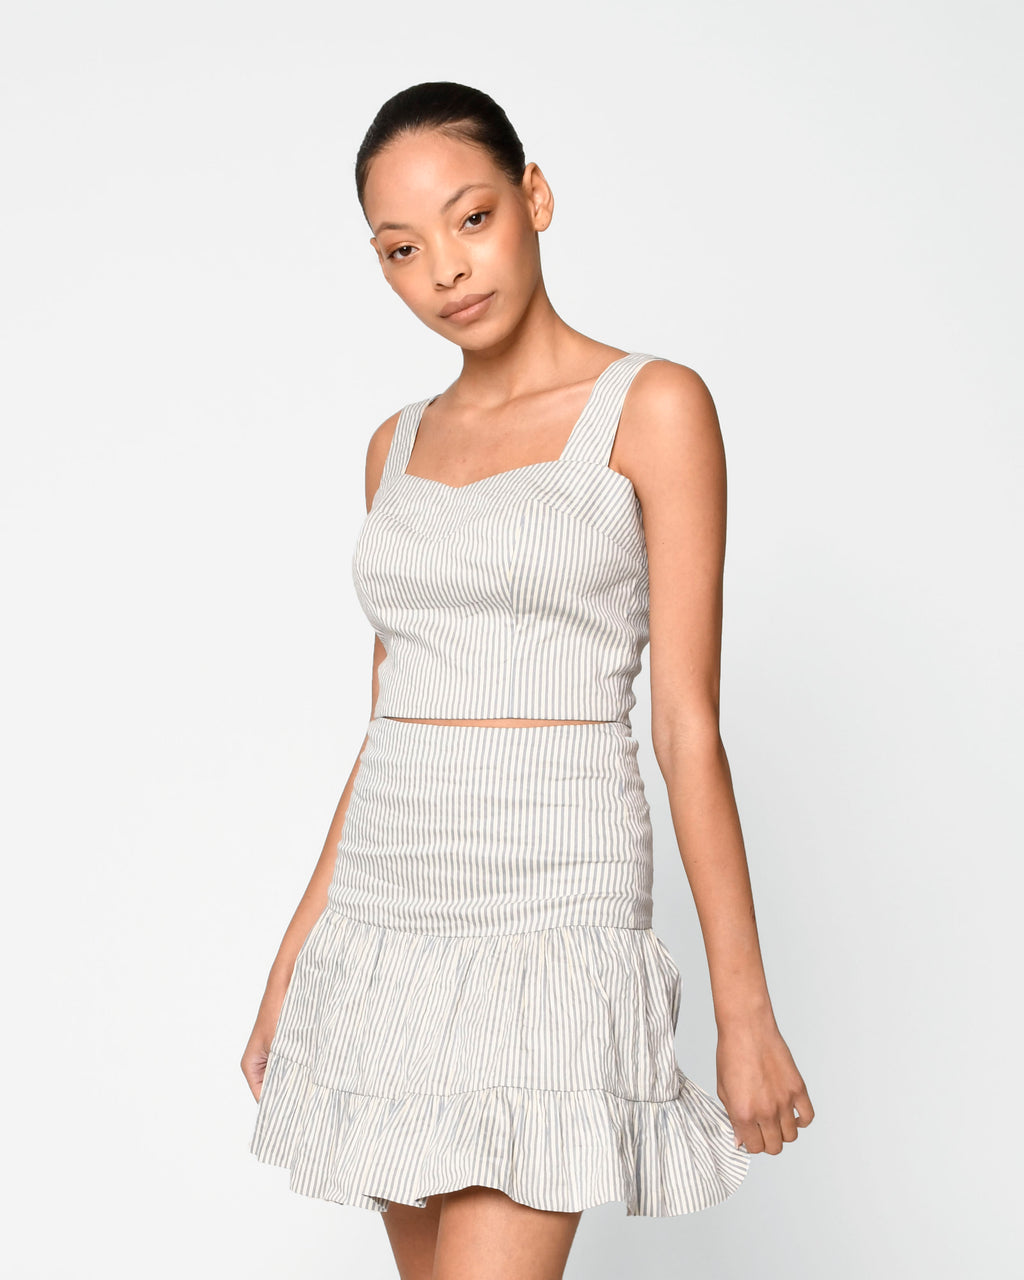 CT18987 - COTTON METAL STRIPE CROP TOP - tops - blouses - Crop tops are a spring/summer staple and this one is no exception. Designed in a fitted silhouette with a square neck and thick straps. Add 1 line break Stylist Tip: Pair with our striped skirt for a matching set.